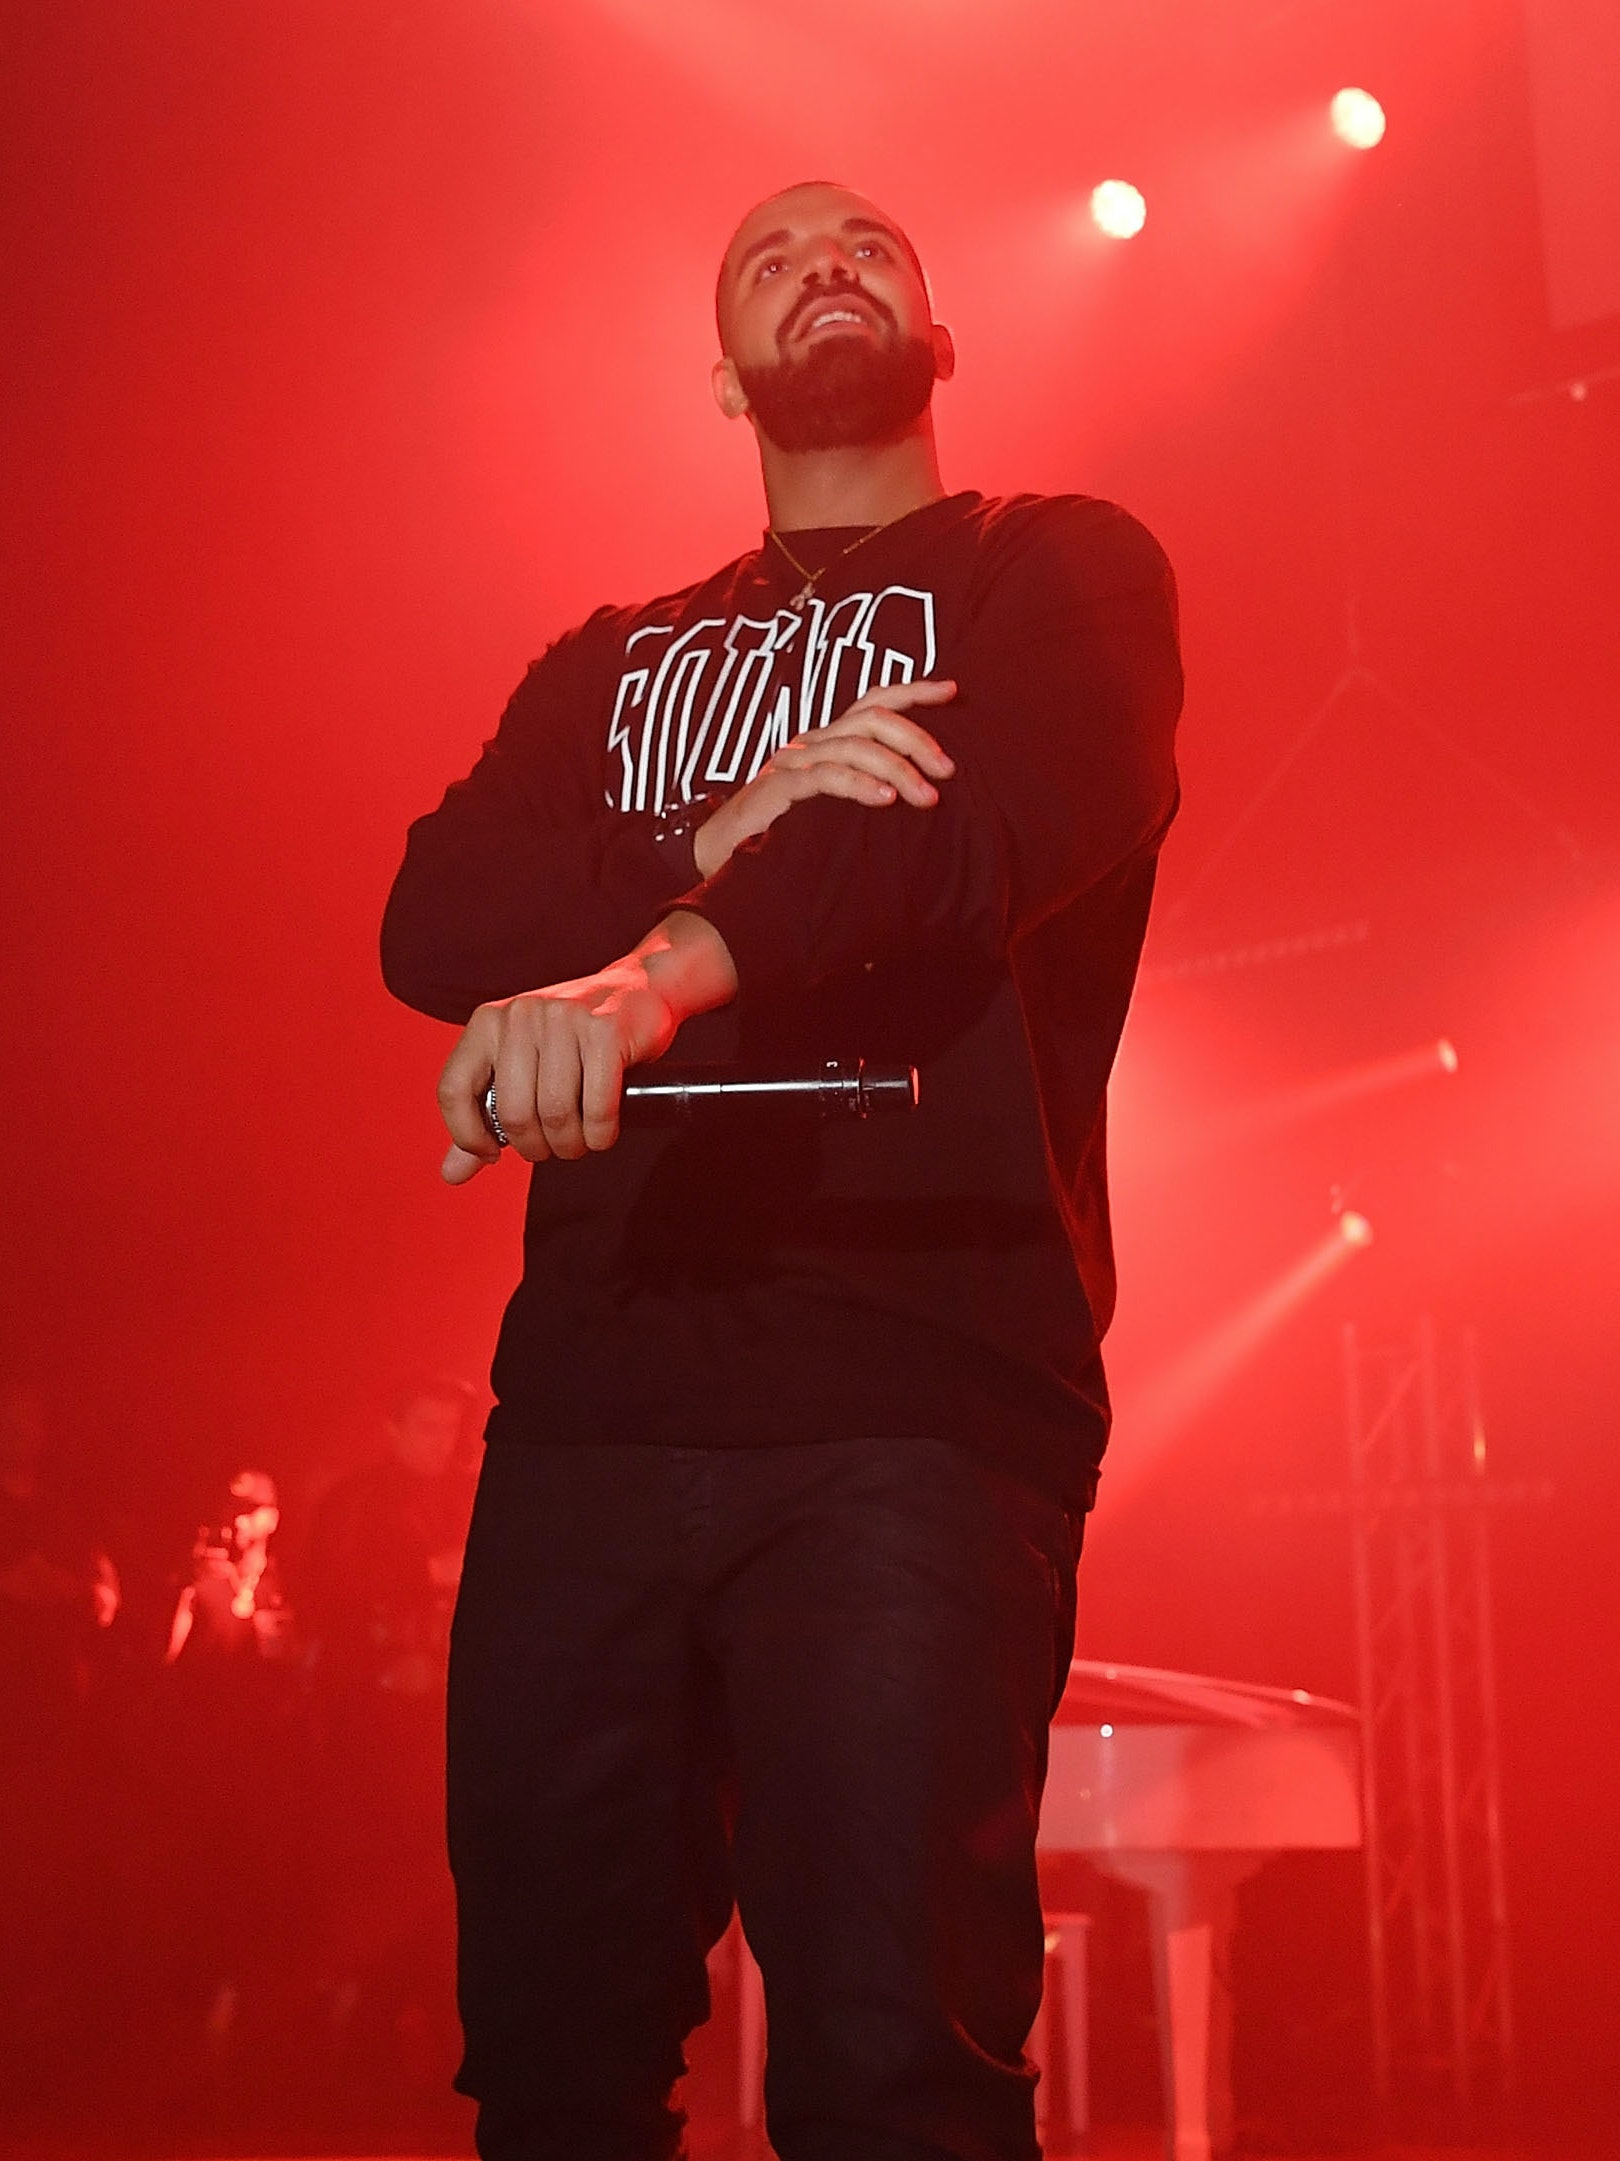 ATLANTA, GA - JULY 22:  Rapper Drake performs on stage at Gucci and Friends Homecoming Concert at Fox Theatre on July 22, 2016 in Atlanta, Georgia.  (Photo by Paras Griffin/Getty Images for Atlantic Records)